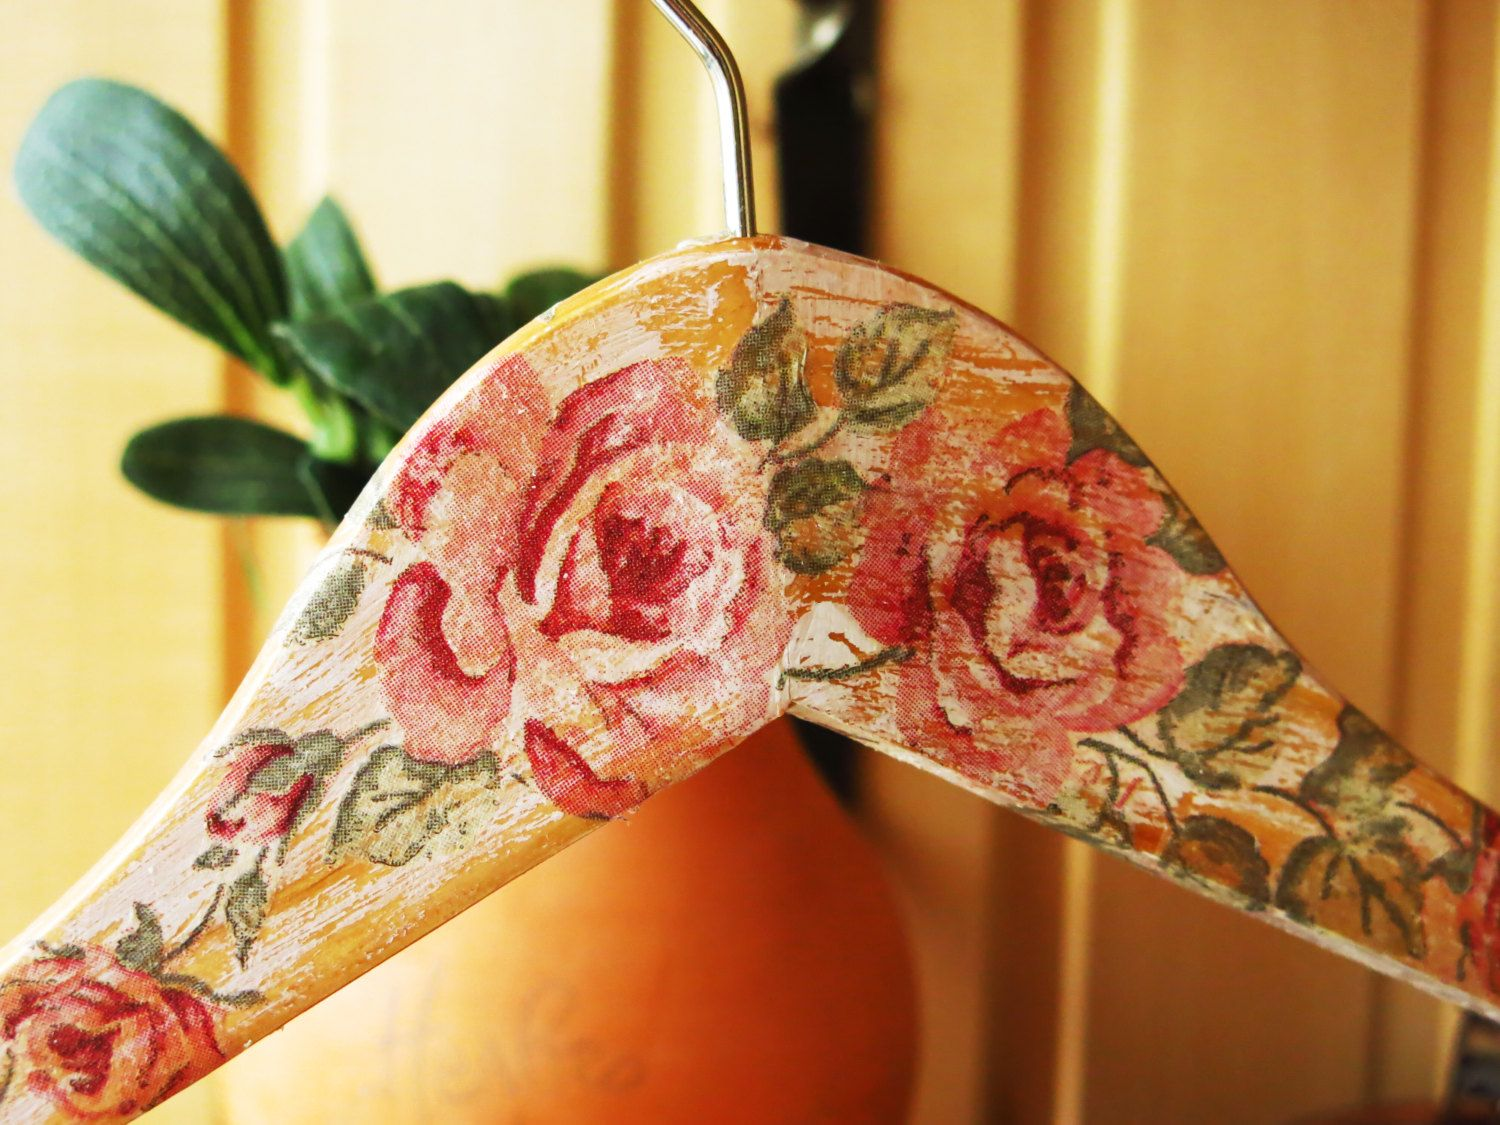 Floral dress hanger Decoupage home decor Practical gift Storage optimization Handmade hanger Ethnic style item dress hanger rustic style floral hanger decoupage colorful hanger storage optimization wooden hanger gift for her practical gift home decor flowers hanger wood ethnic style housewarming gift 9.00 USD #goriani